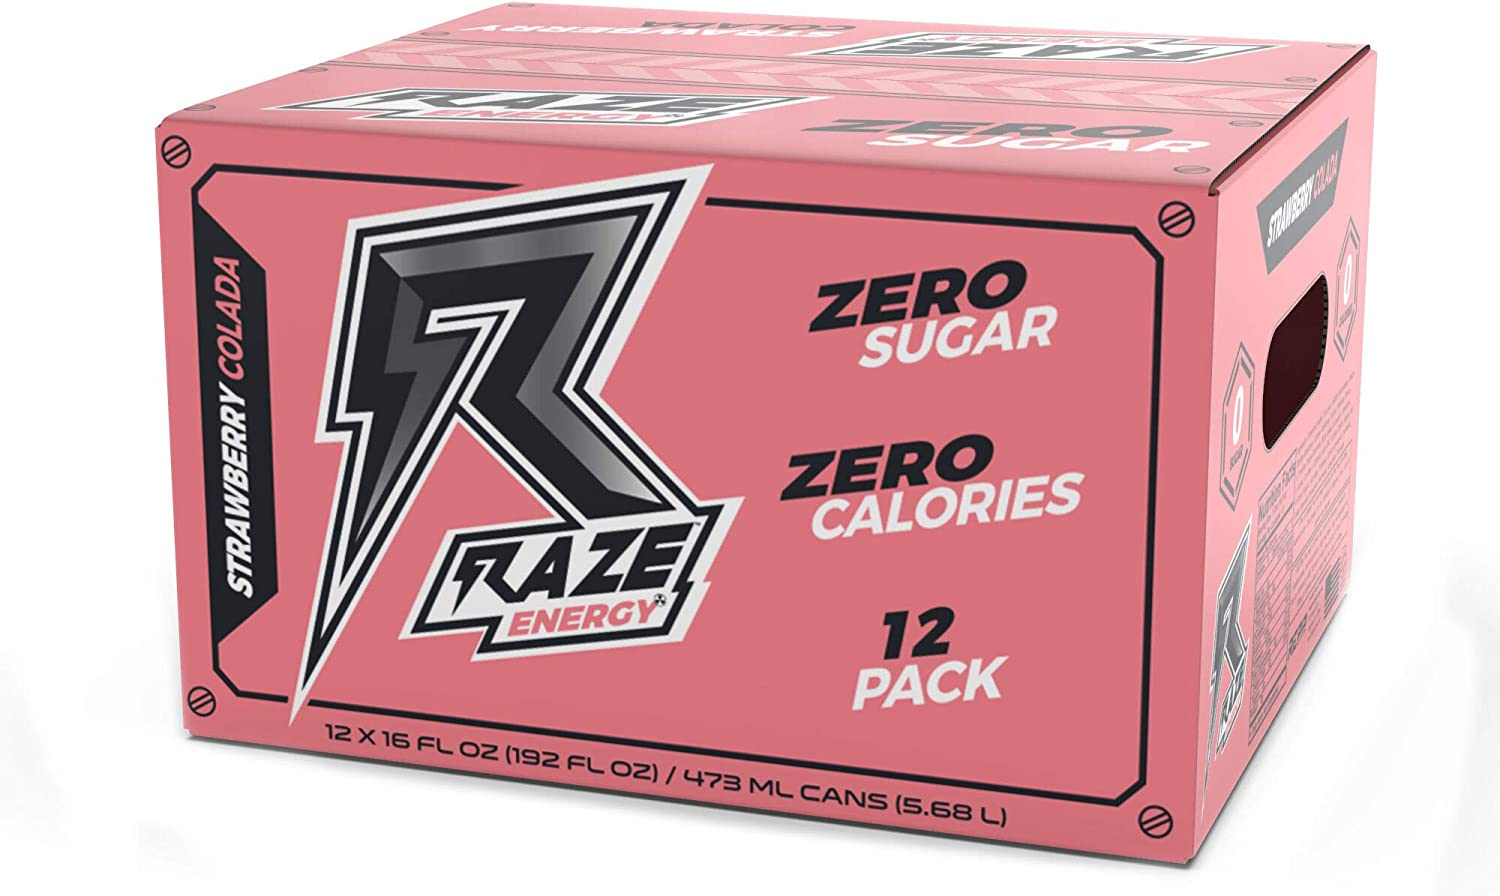 Raze Energy Drink | Performance and Hydration | Sugar Free, Zero Calorie Energy Drink - Strawberry Colada 12 Pack